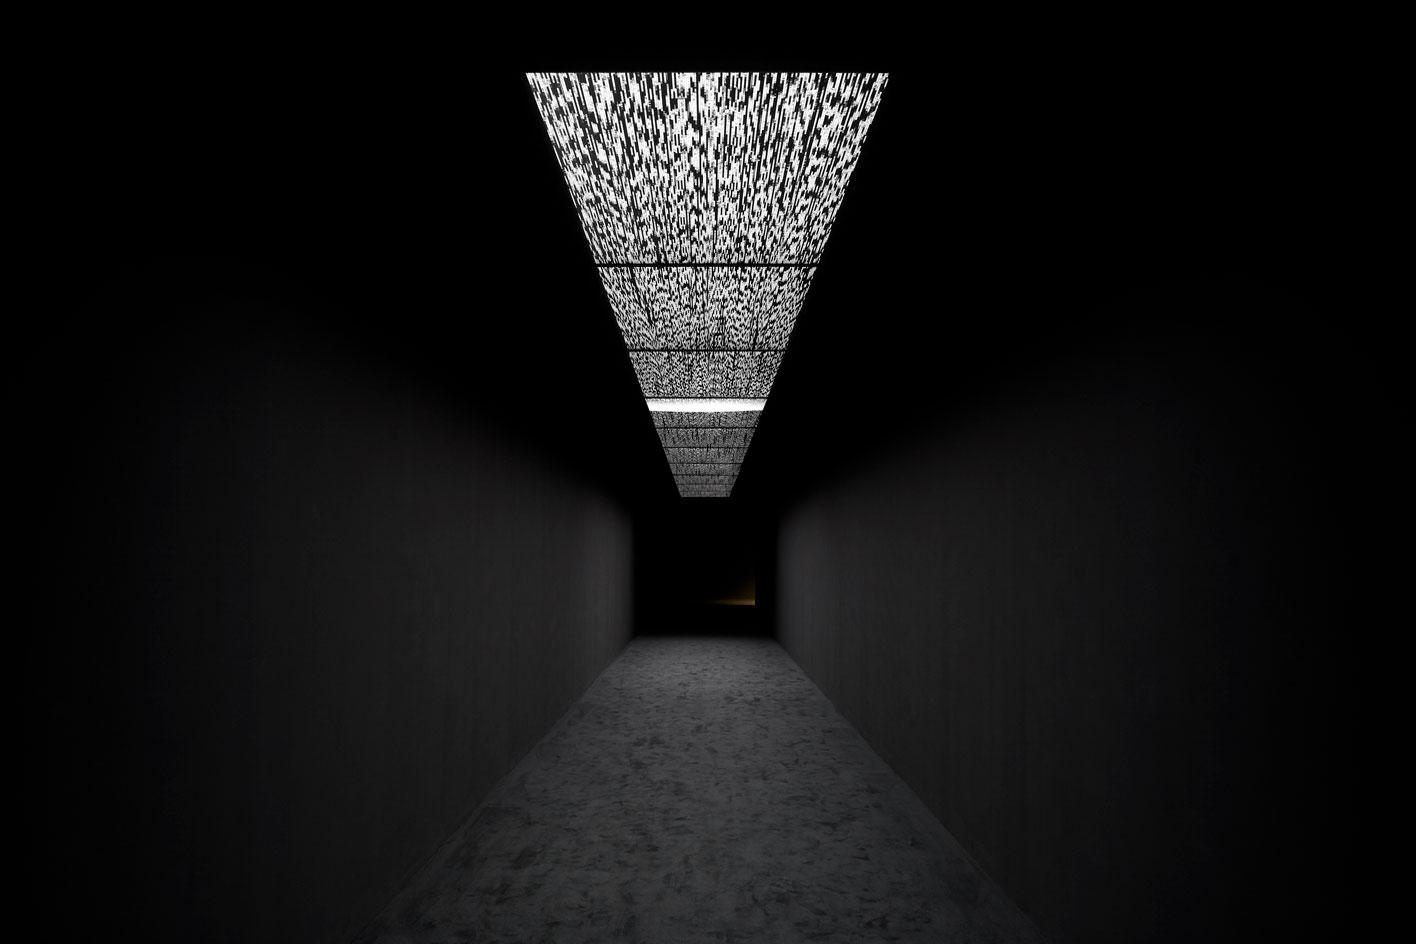 Ryoji Ikeda, data.flux in a solo show at 180 The Strand, London 2021